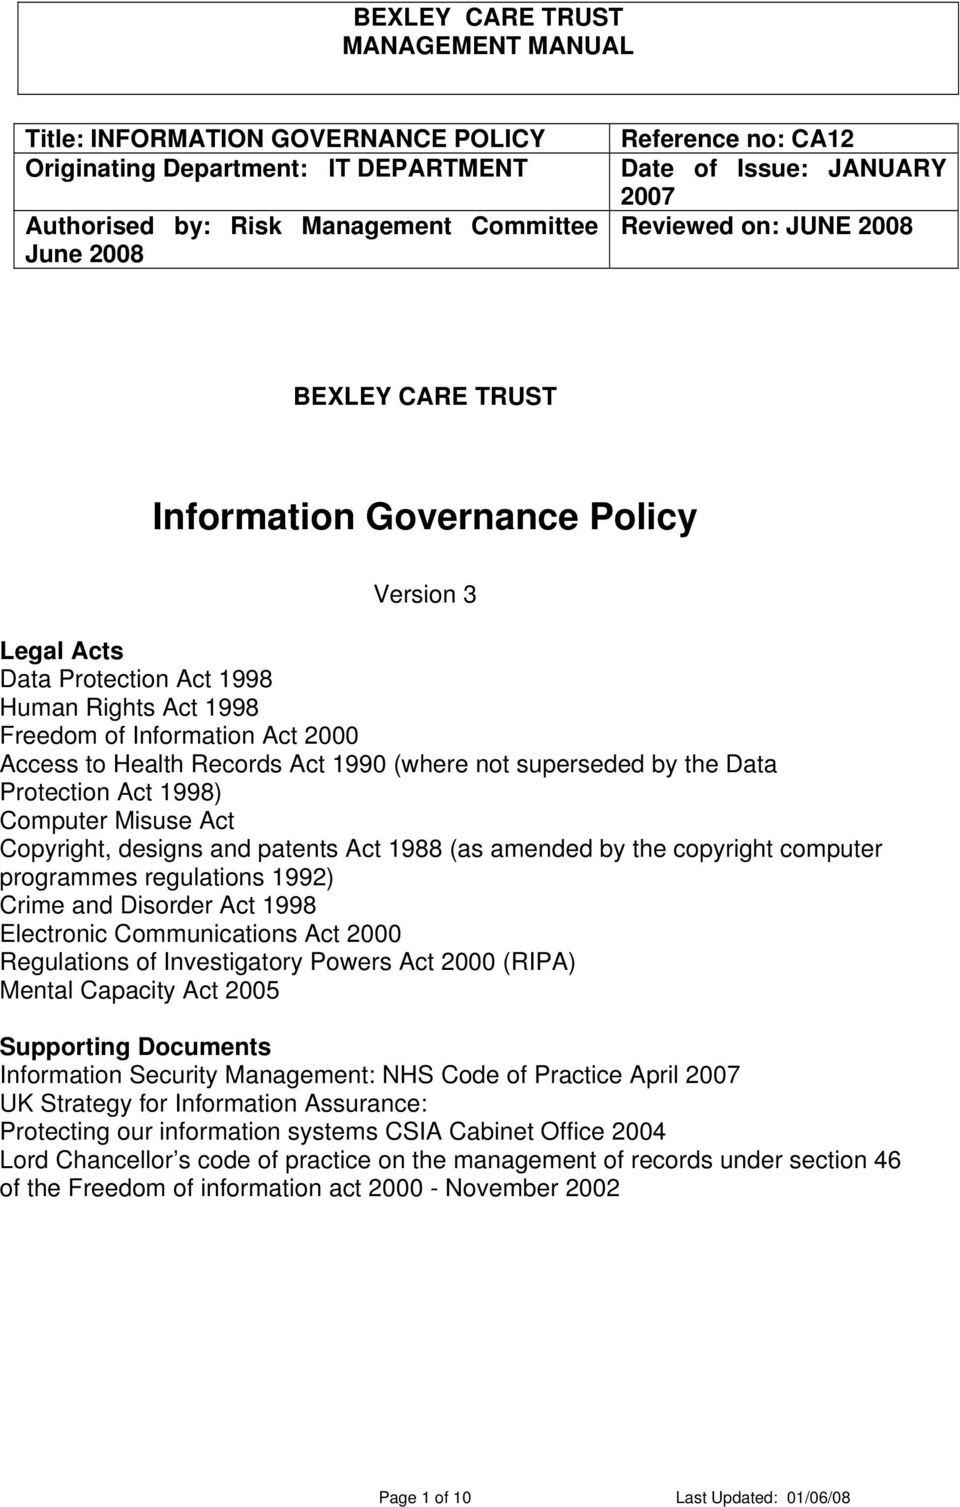 Health Records Act 1990 (where not superseded by the Data Protection Act 1998) Computer Misuse Act Copyright, designs and patents Act 1988 (as amended by the copyright computer programmes regulations